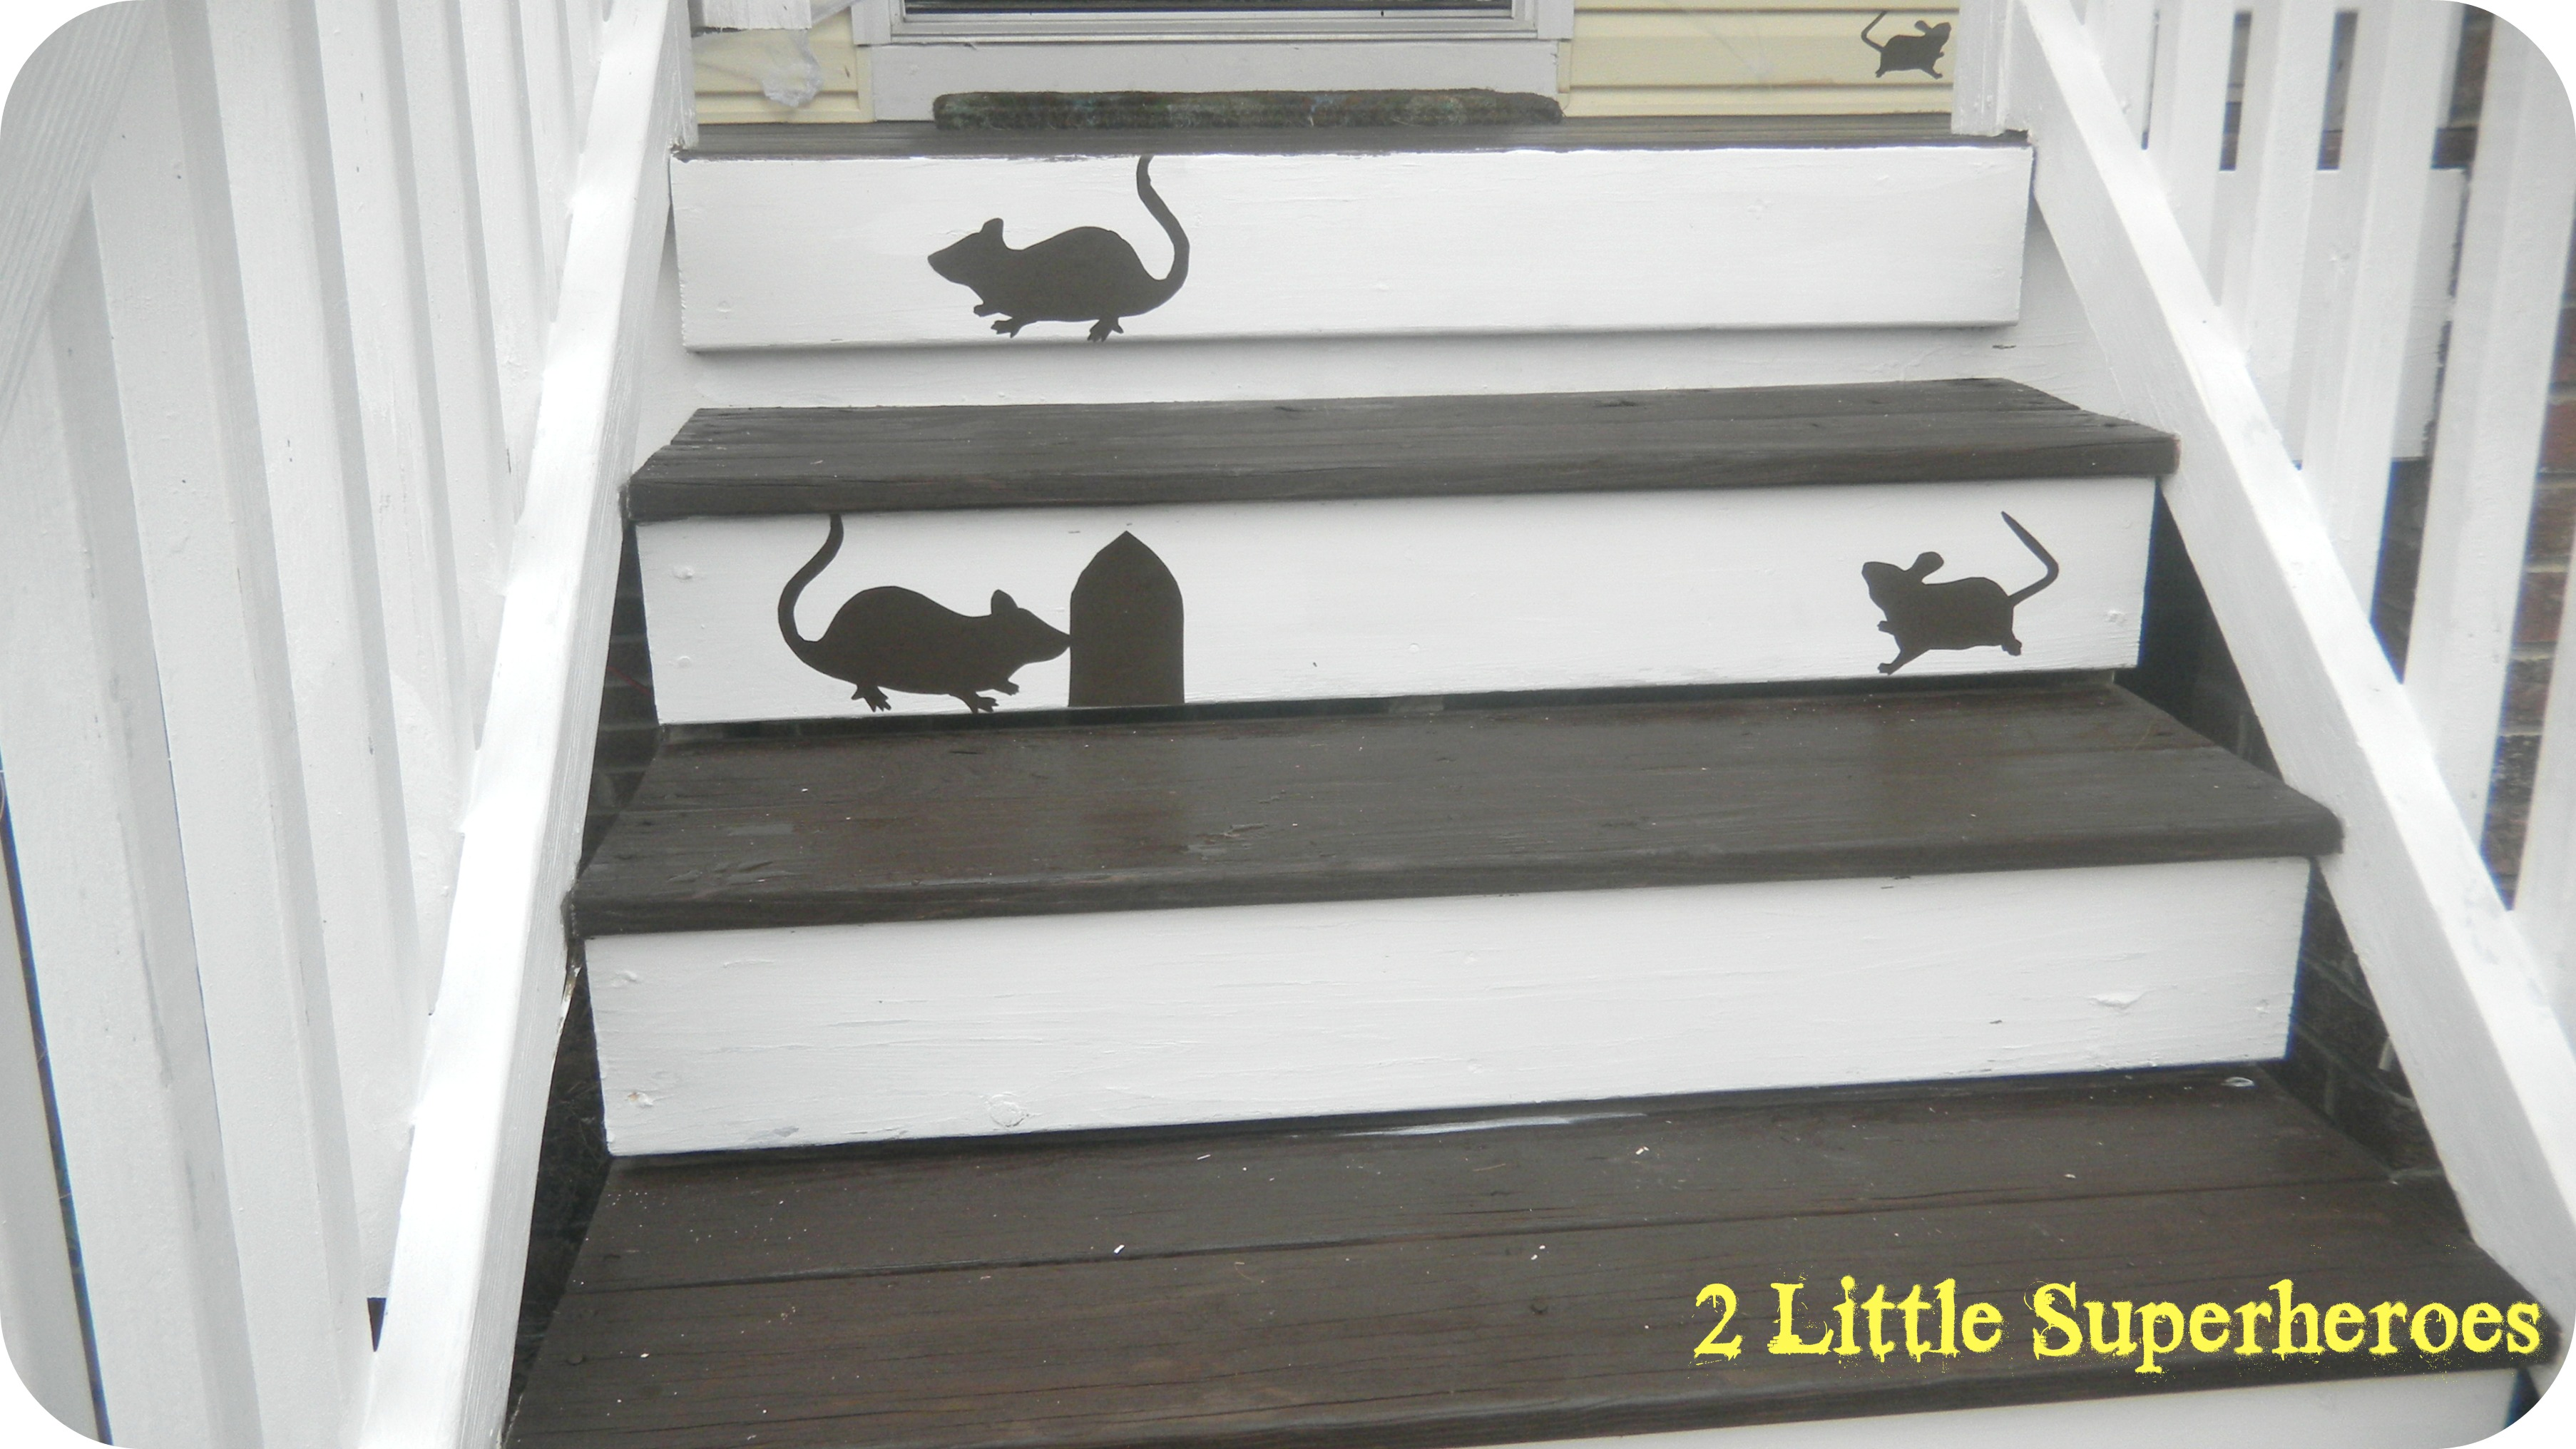 mousestairs Mouse Stairs